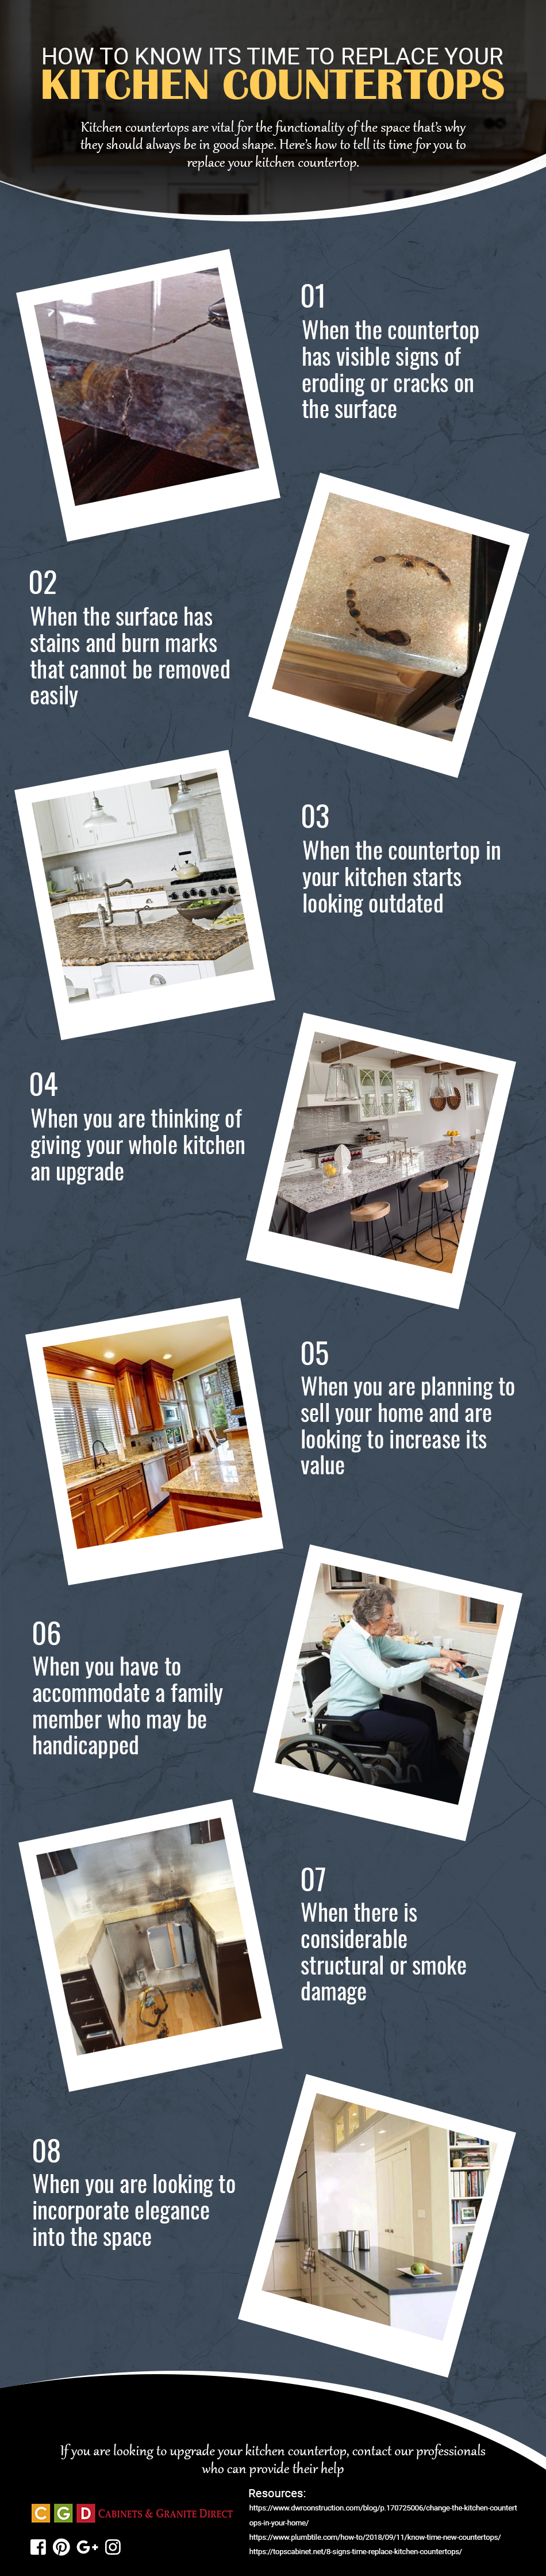 Signs its Time to Upgrade Your Kitchen Countertop